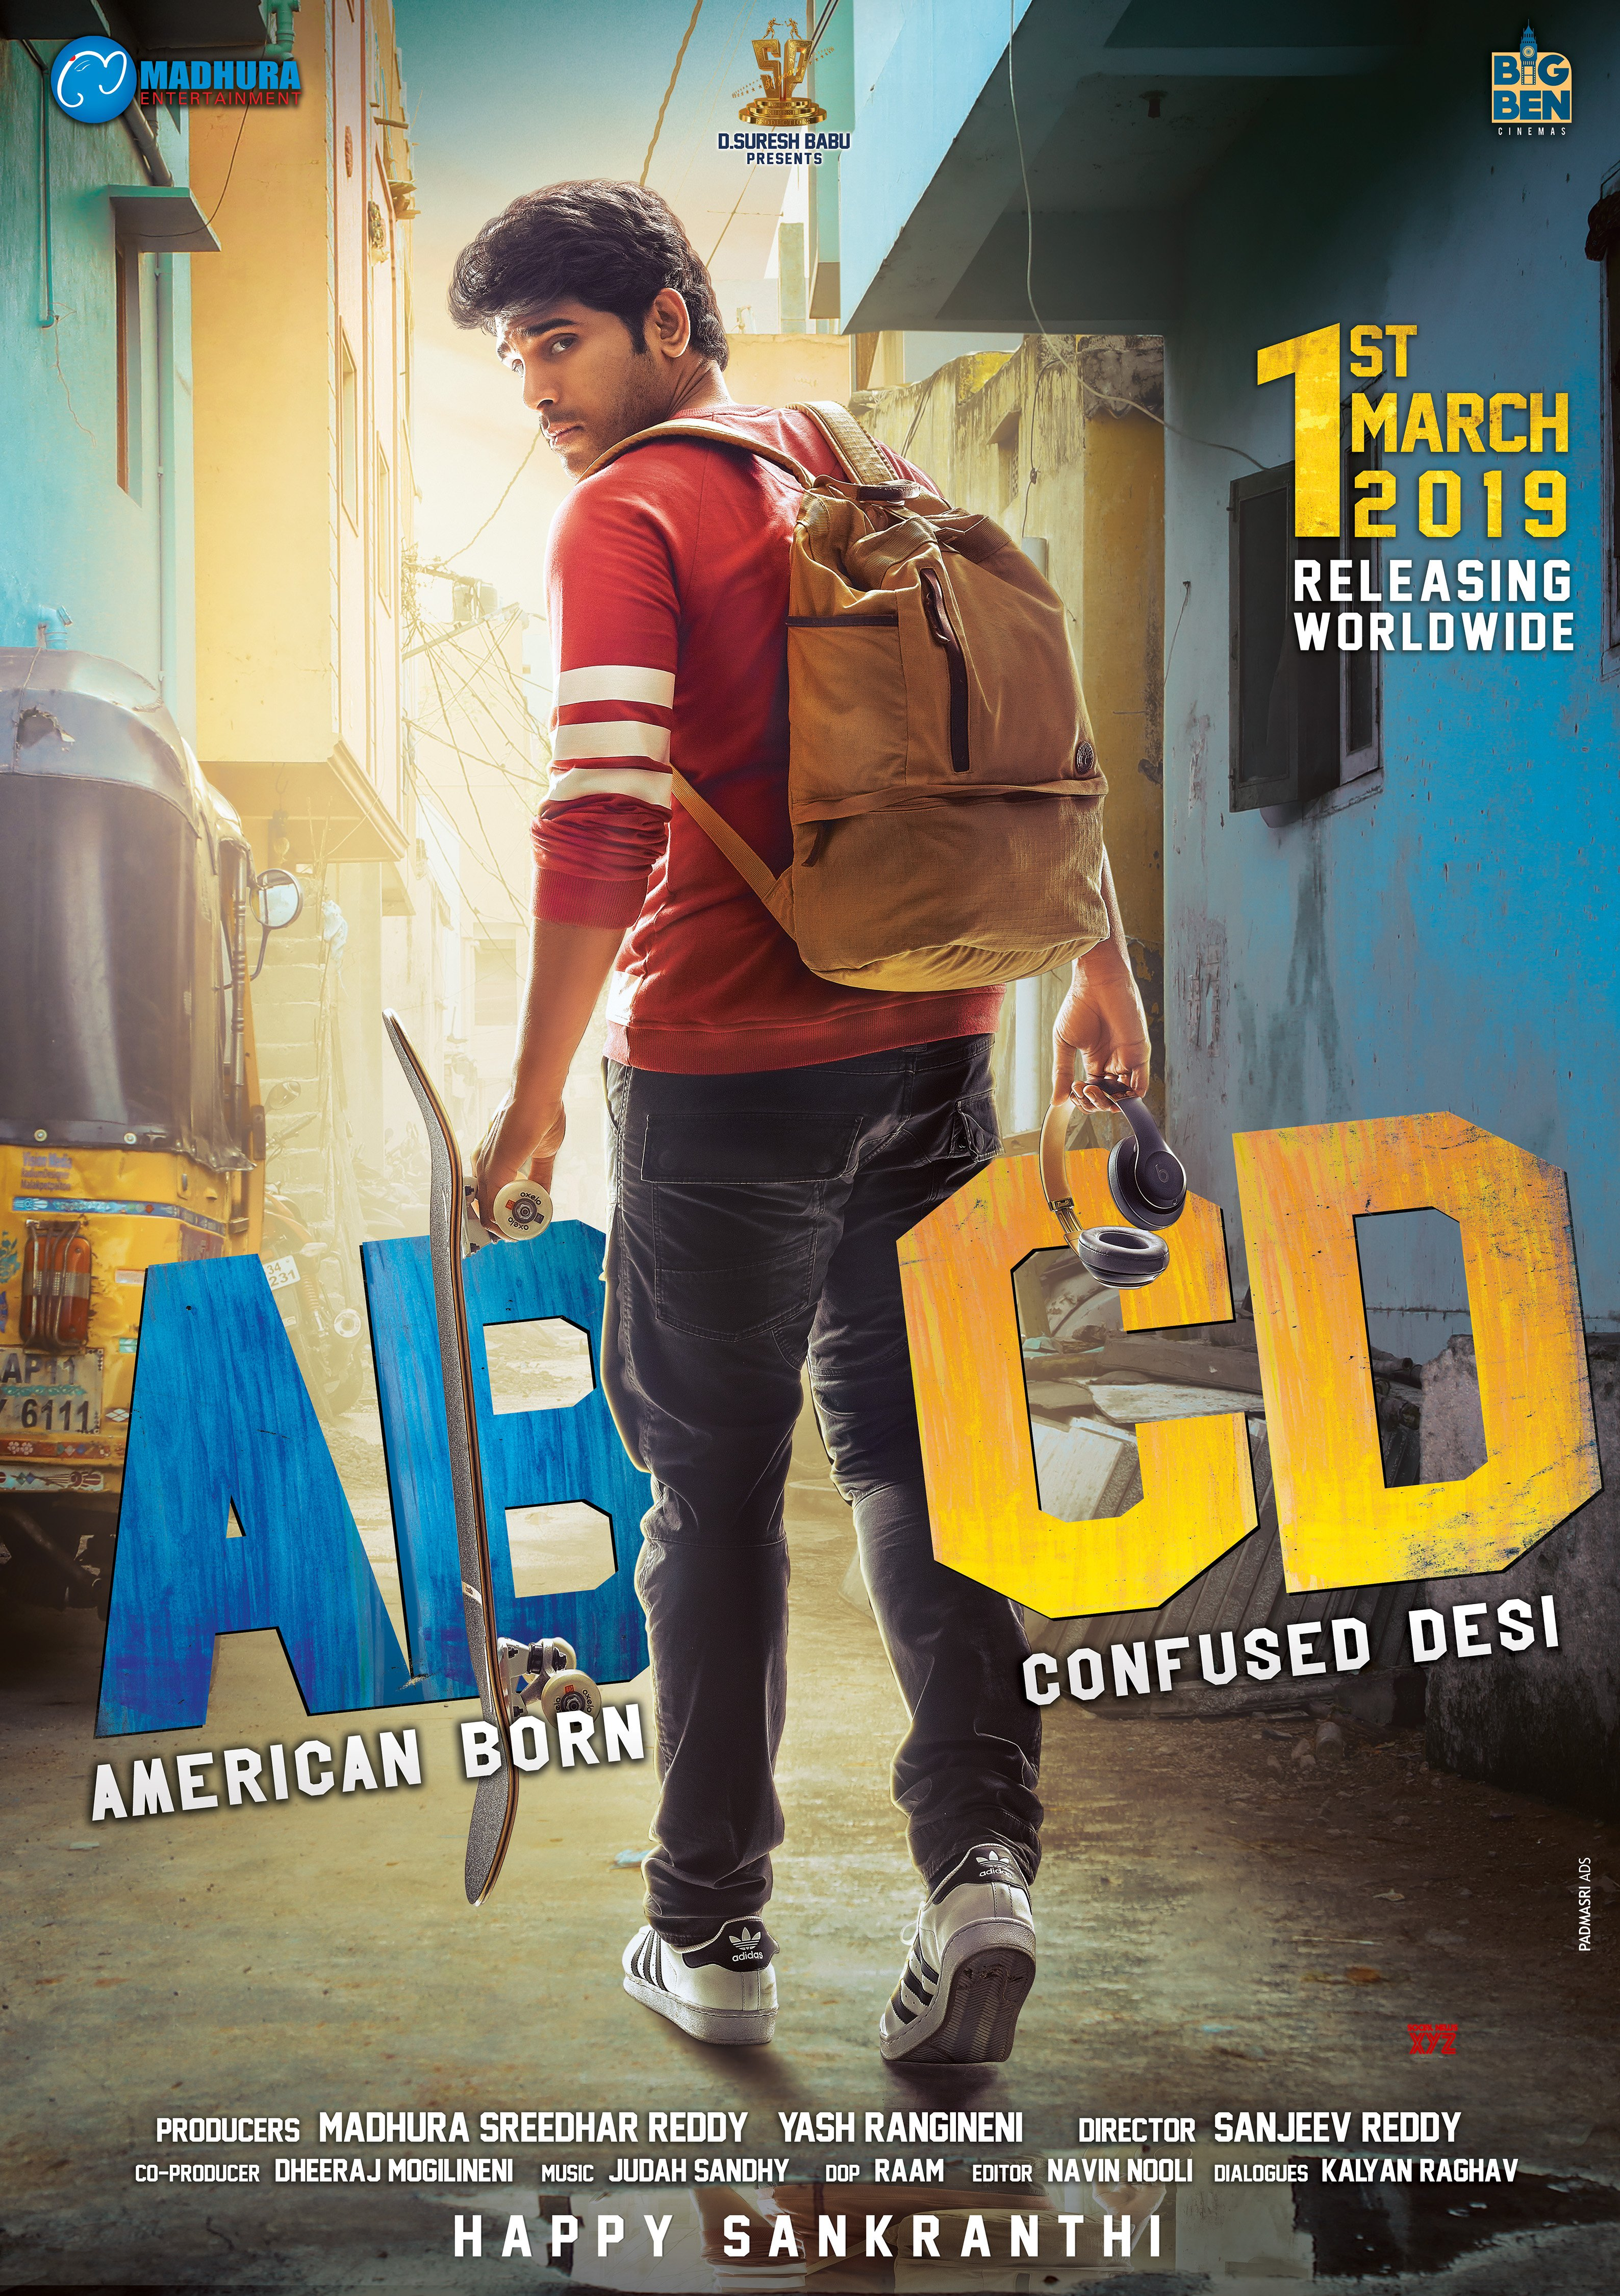 Allu Sirish's ABCD movie to release world wide on March 1st